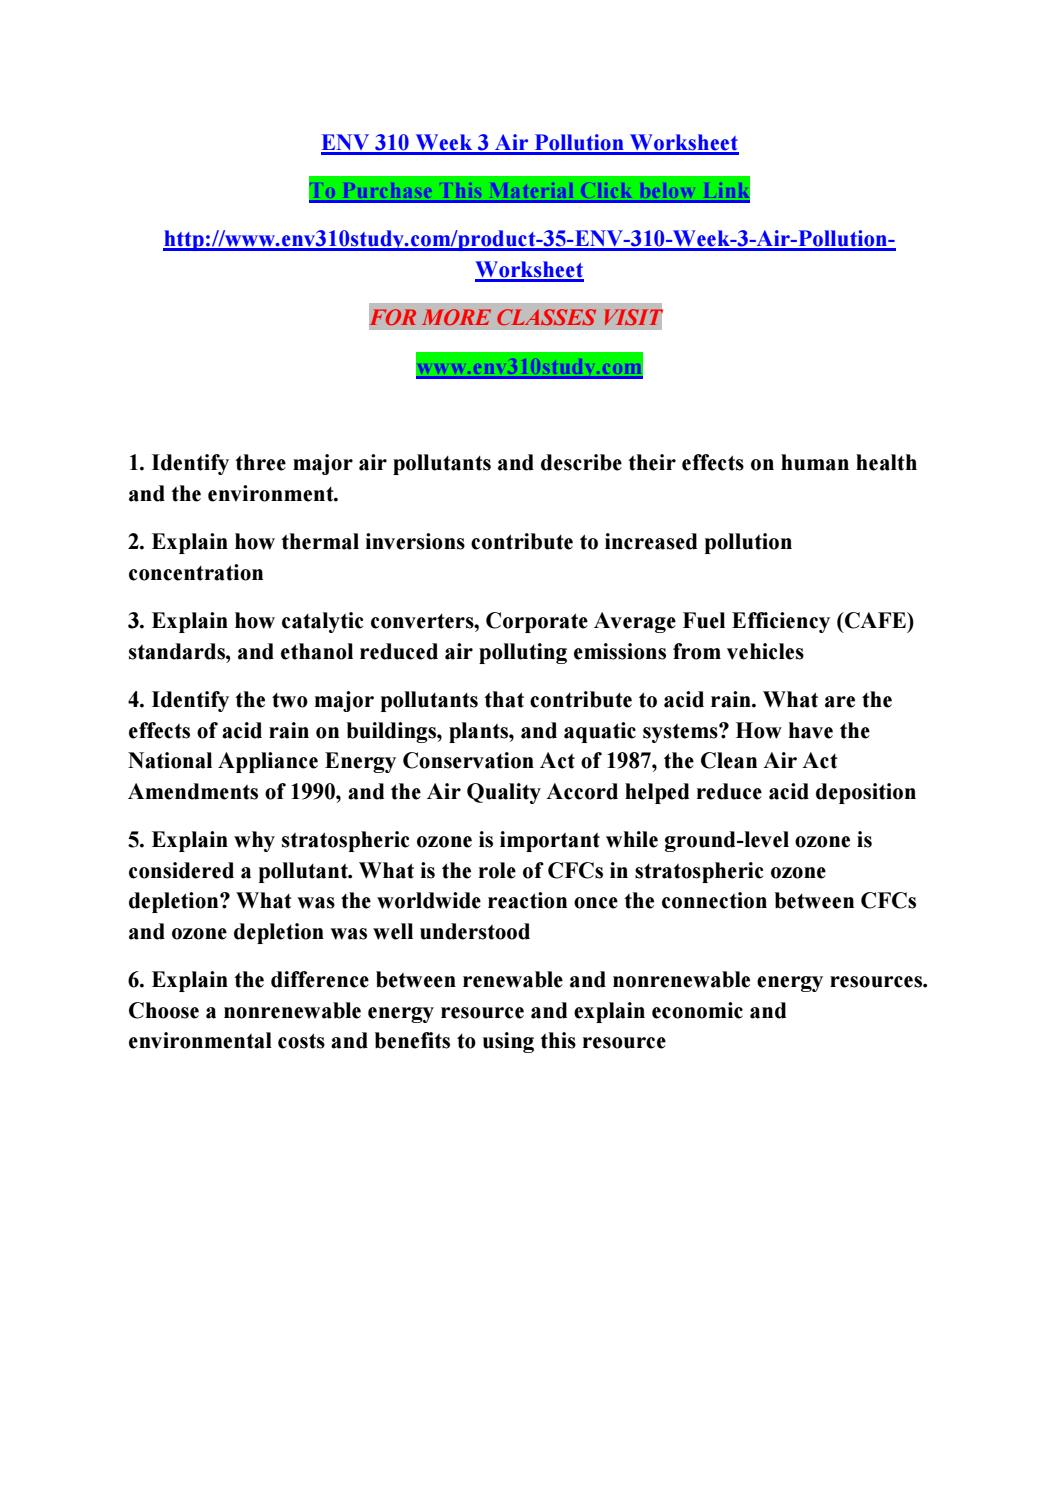 worksheet Air Pollution Worksheet env 310 week 3 air pollution worksheet by manuu78 issuu